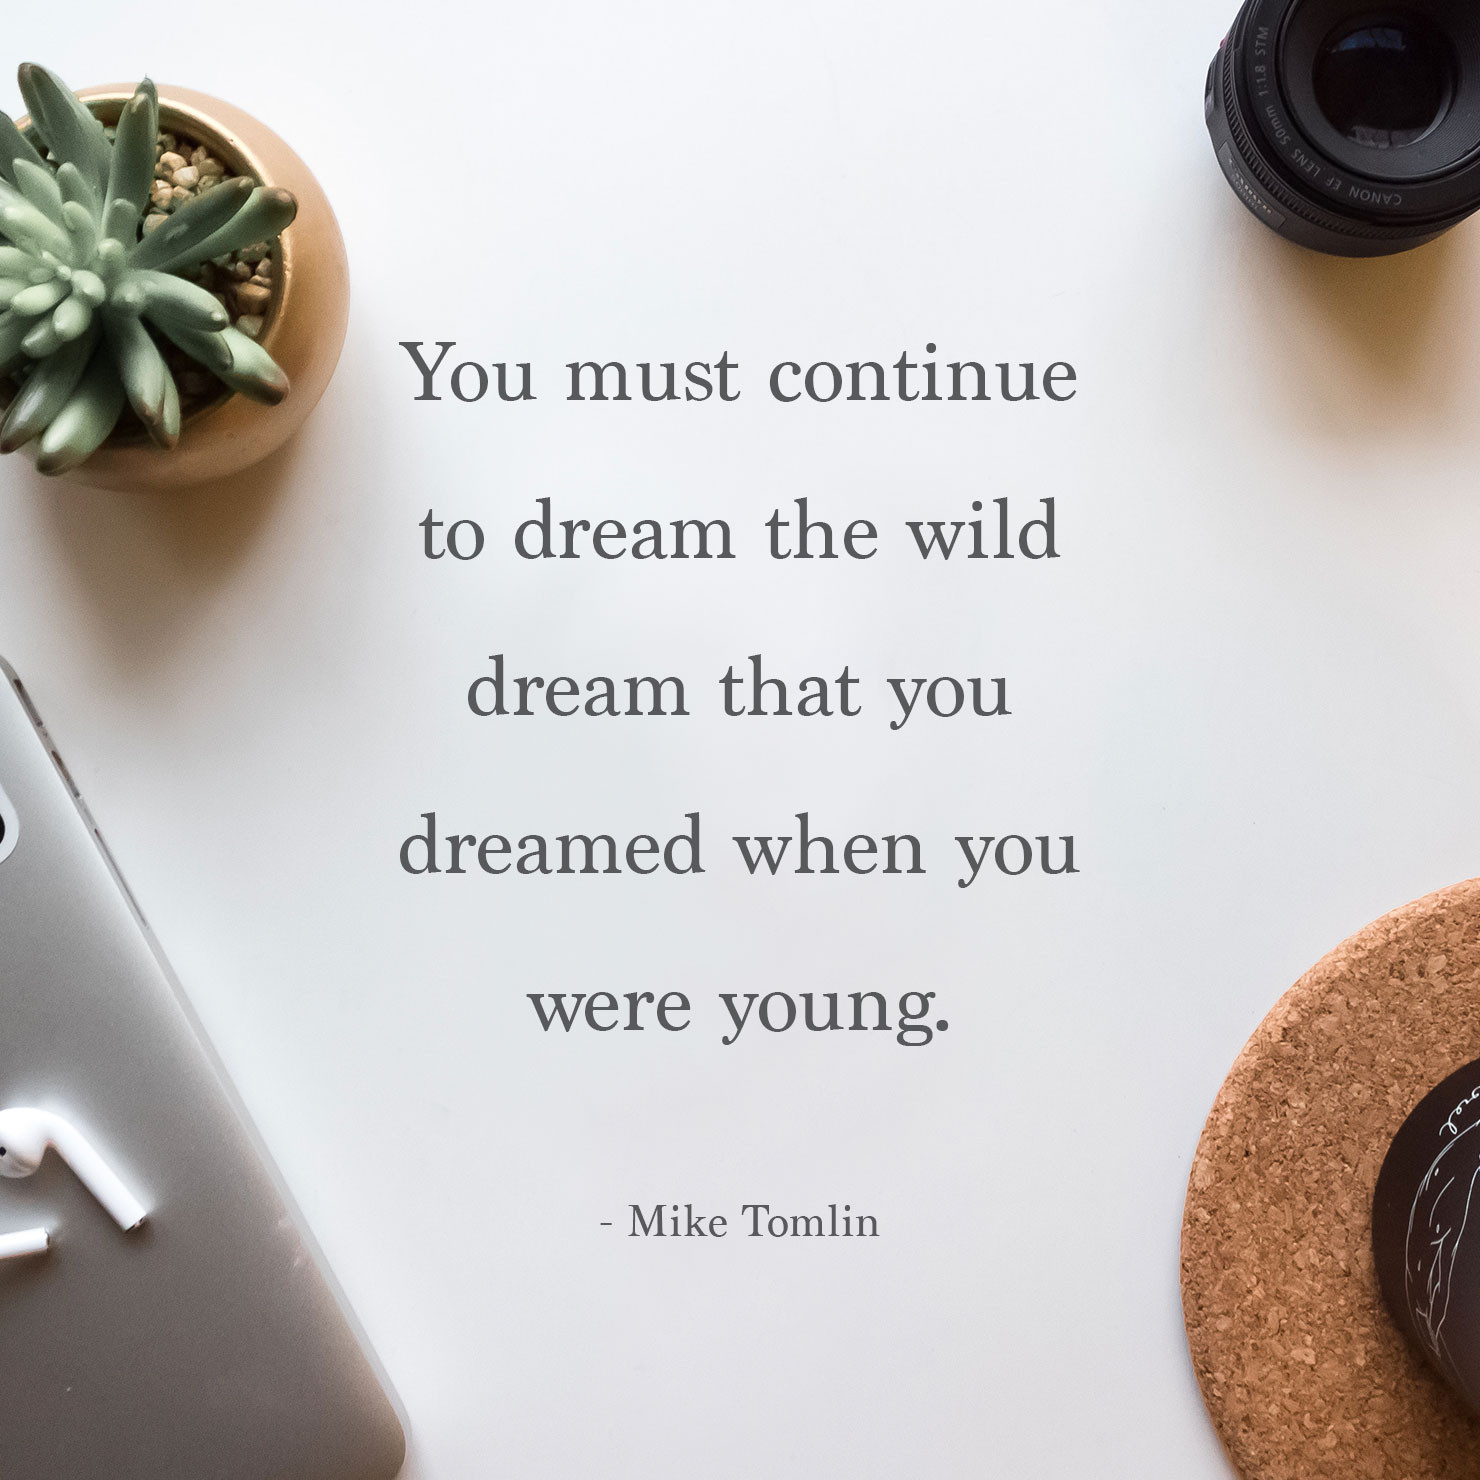 Quotes Graduation  Graduation Quotes and Sayings For 2019